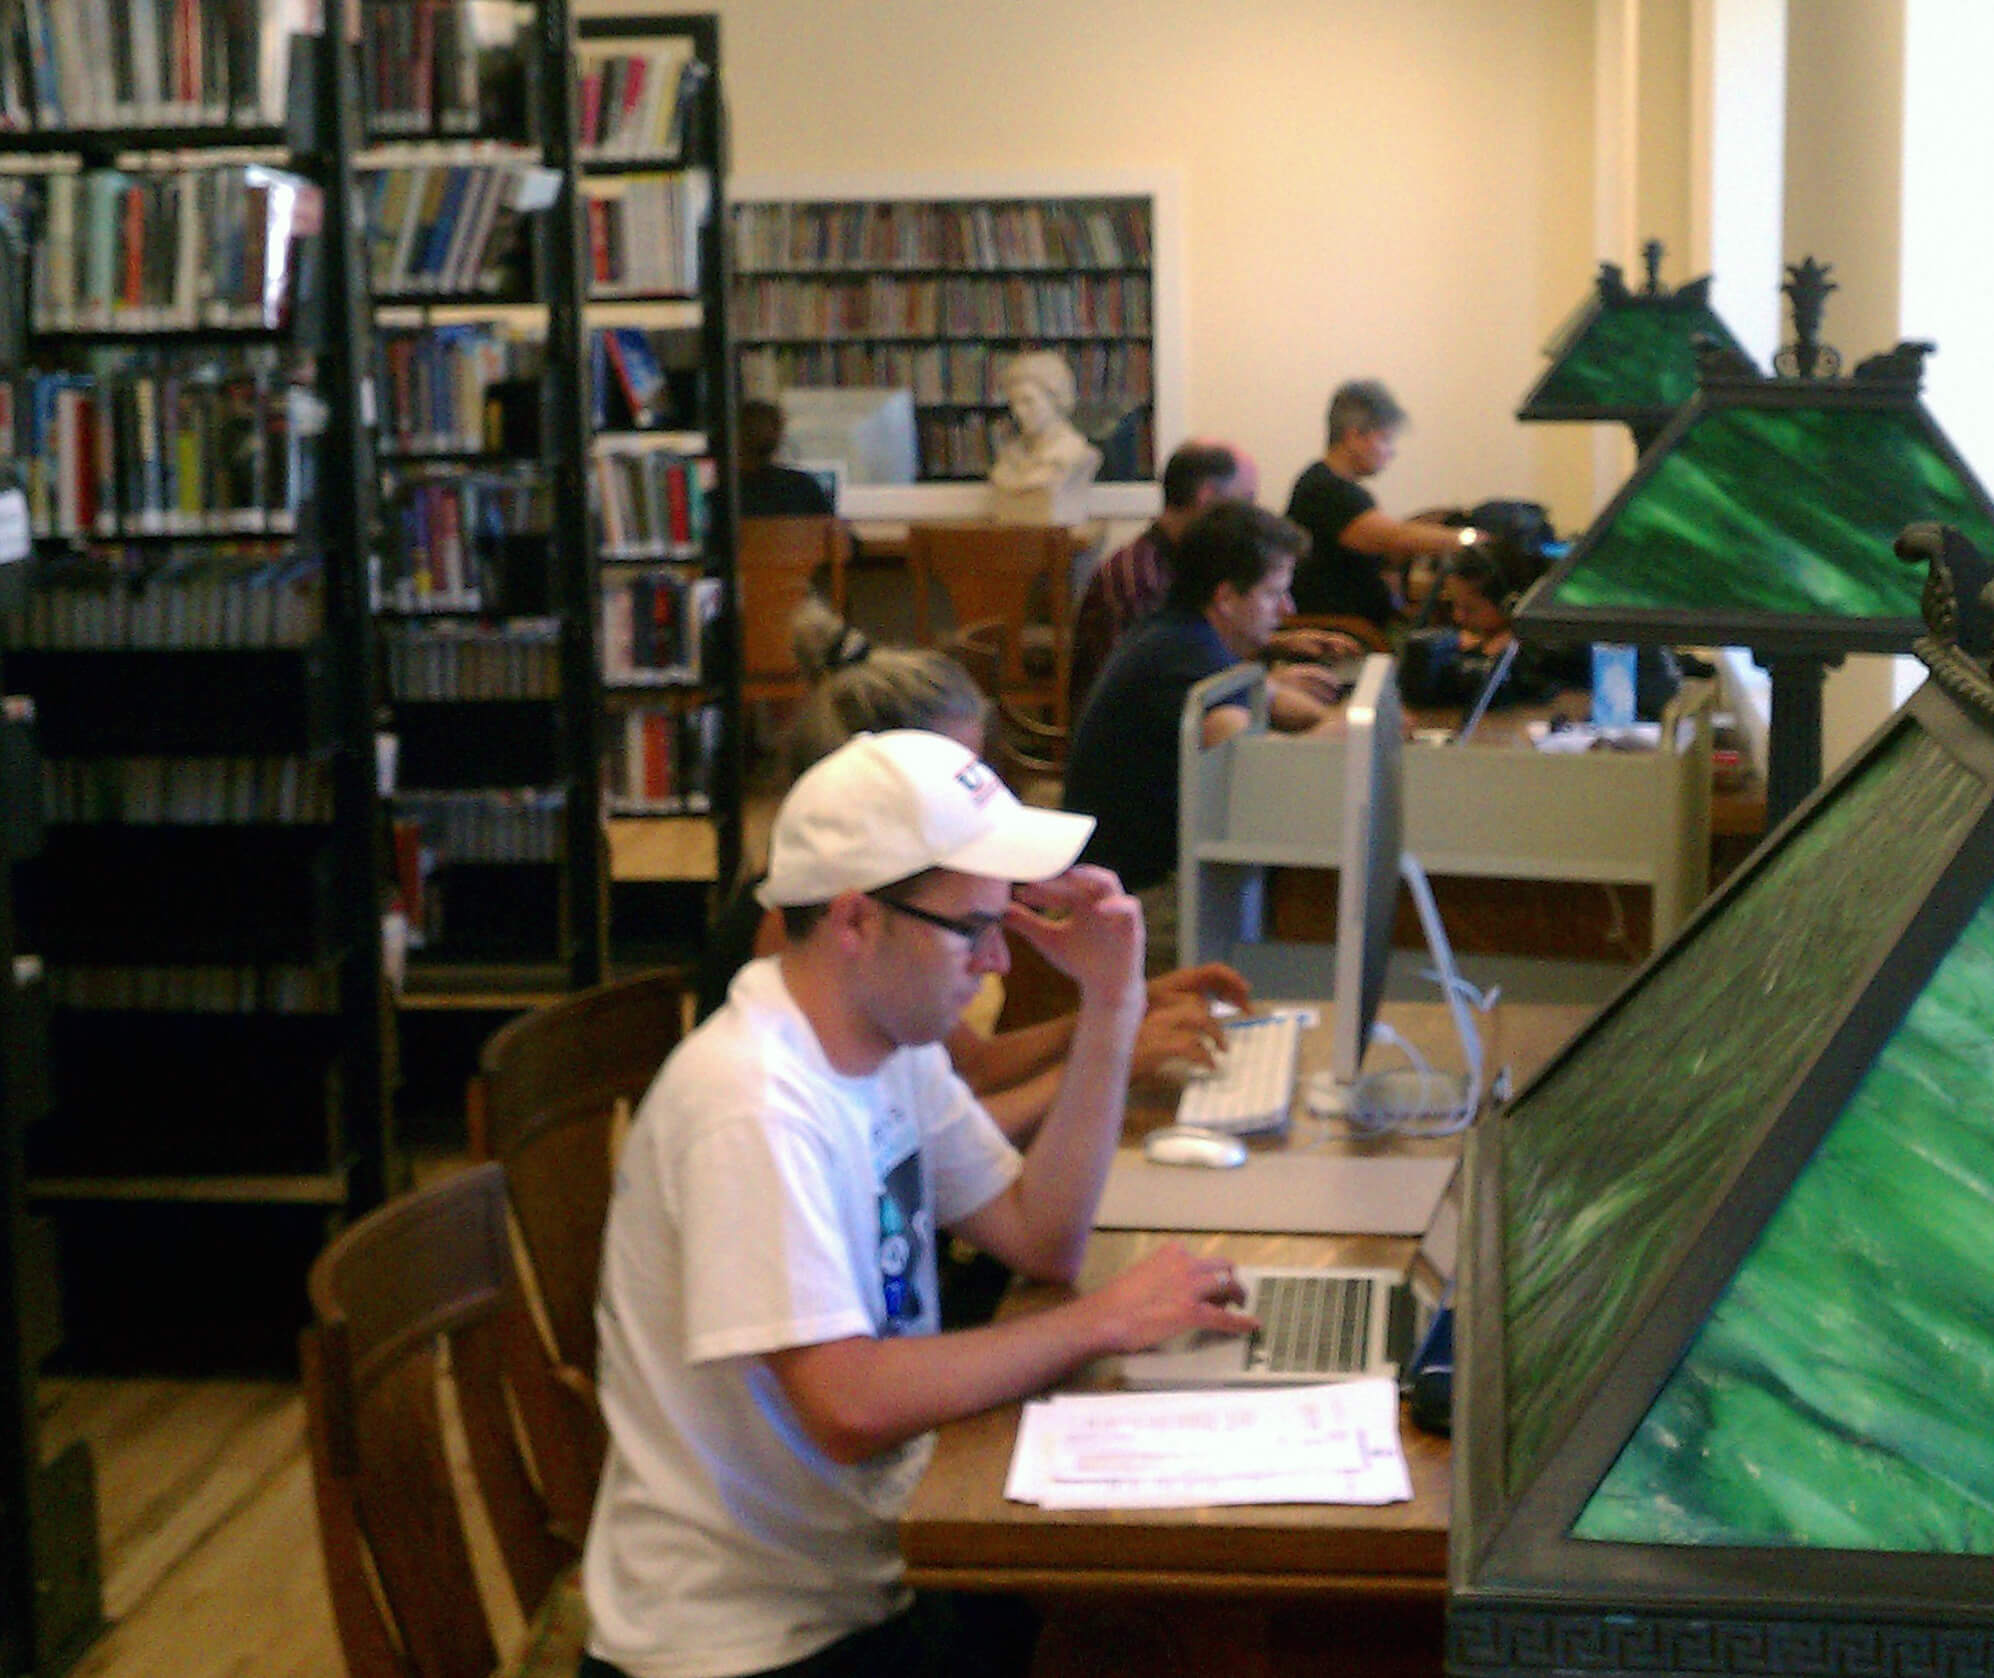 Library patrons using JJML's Wifi Connection